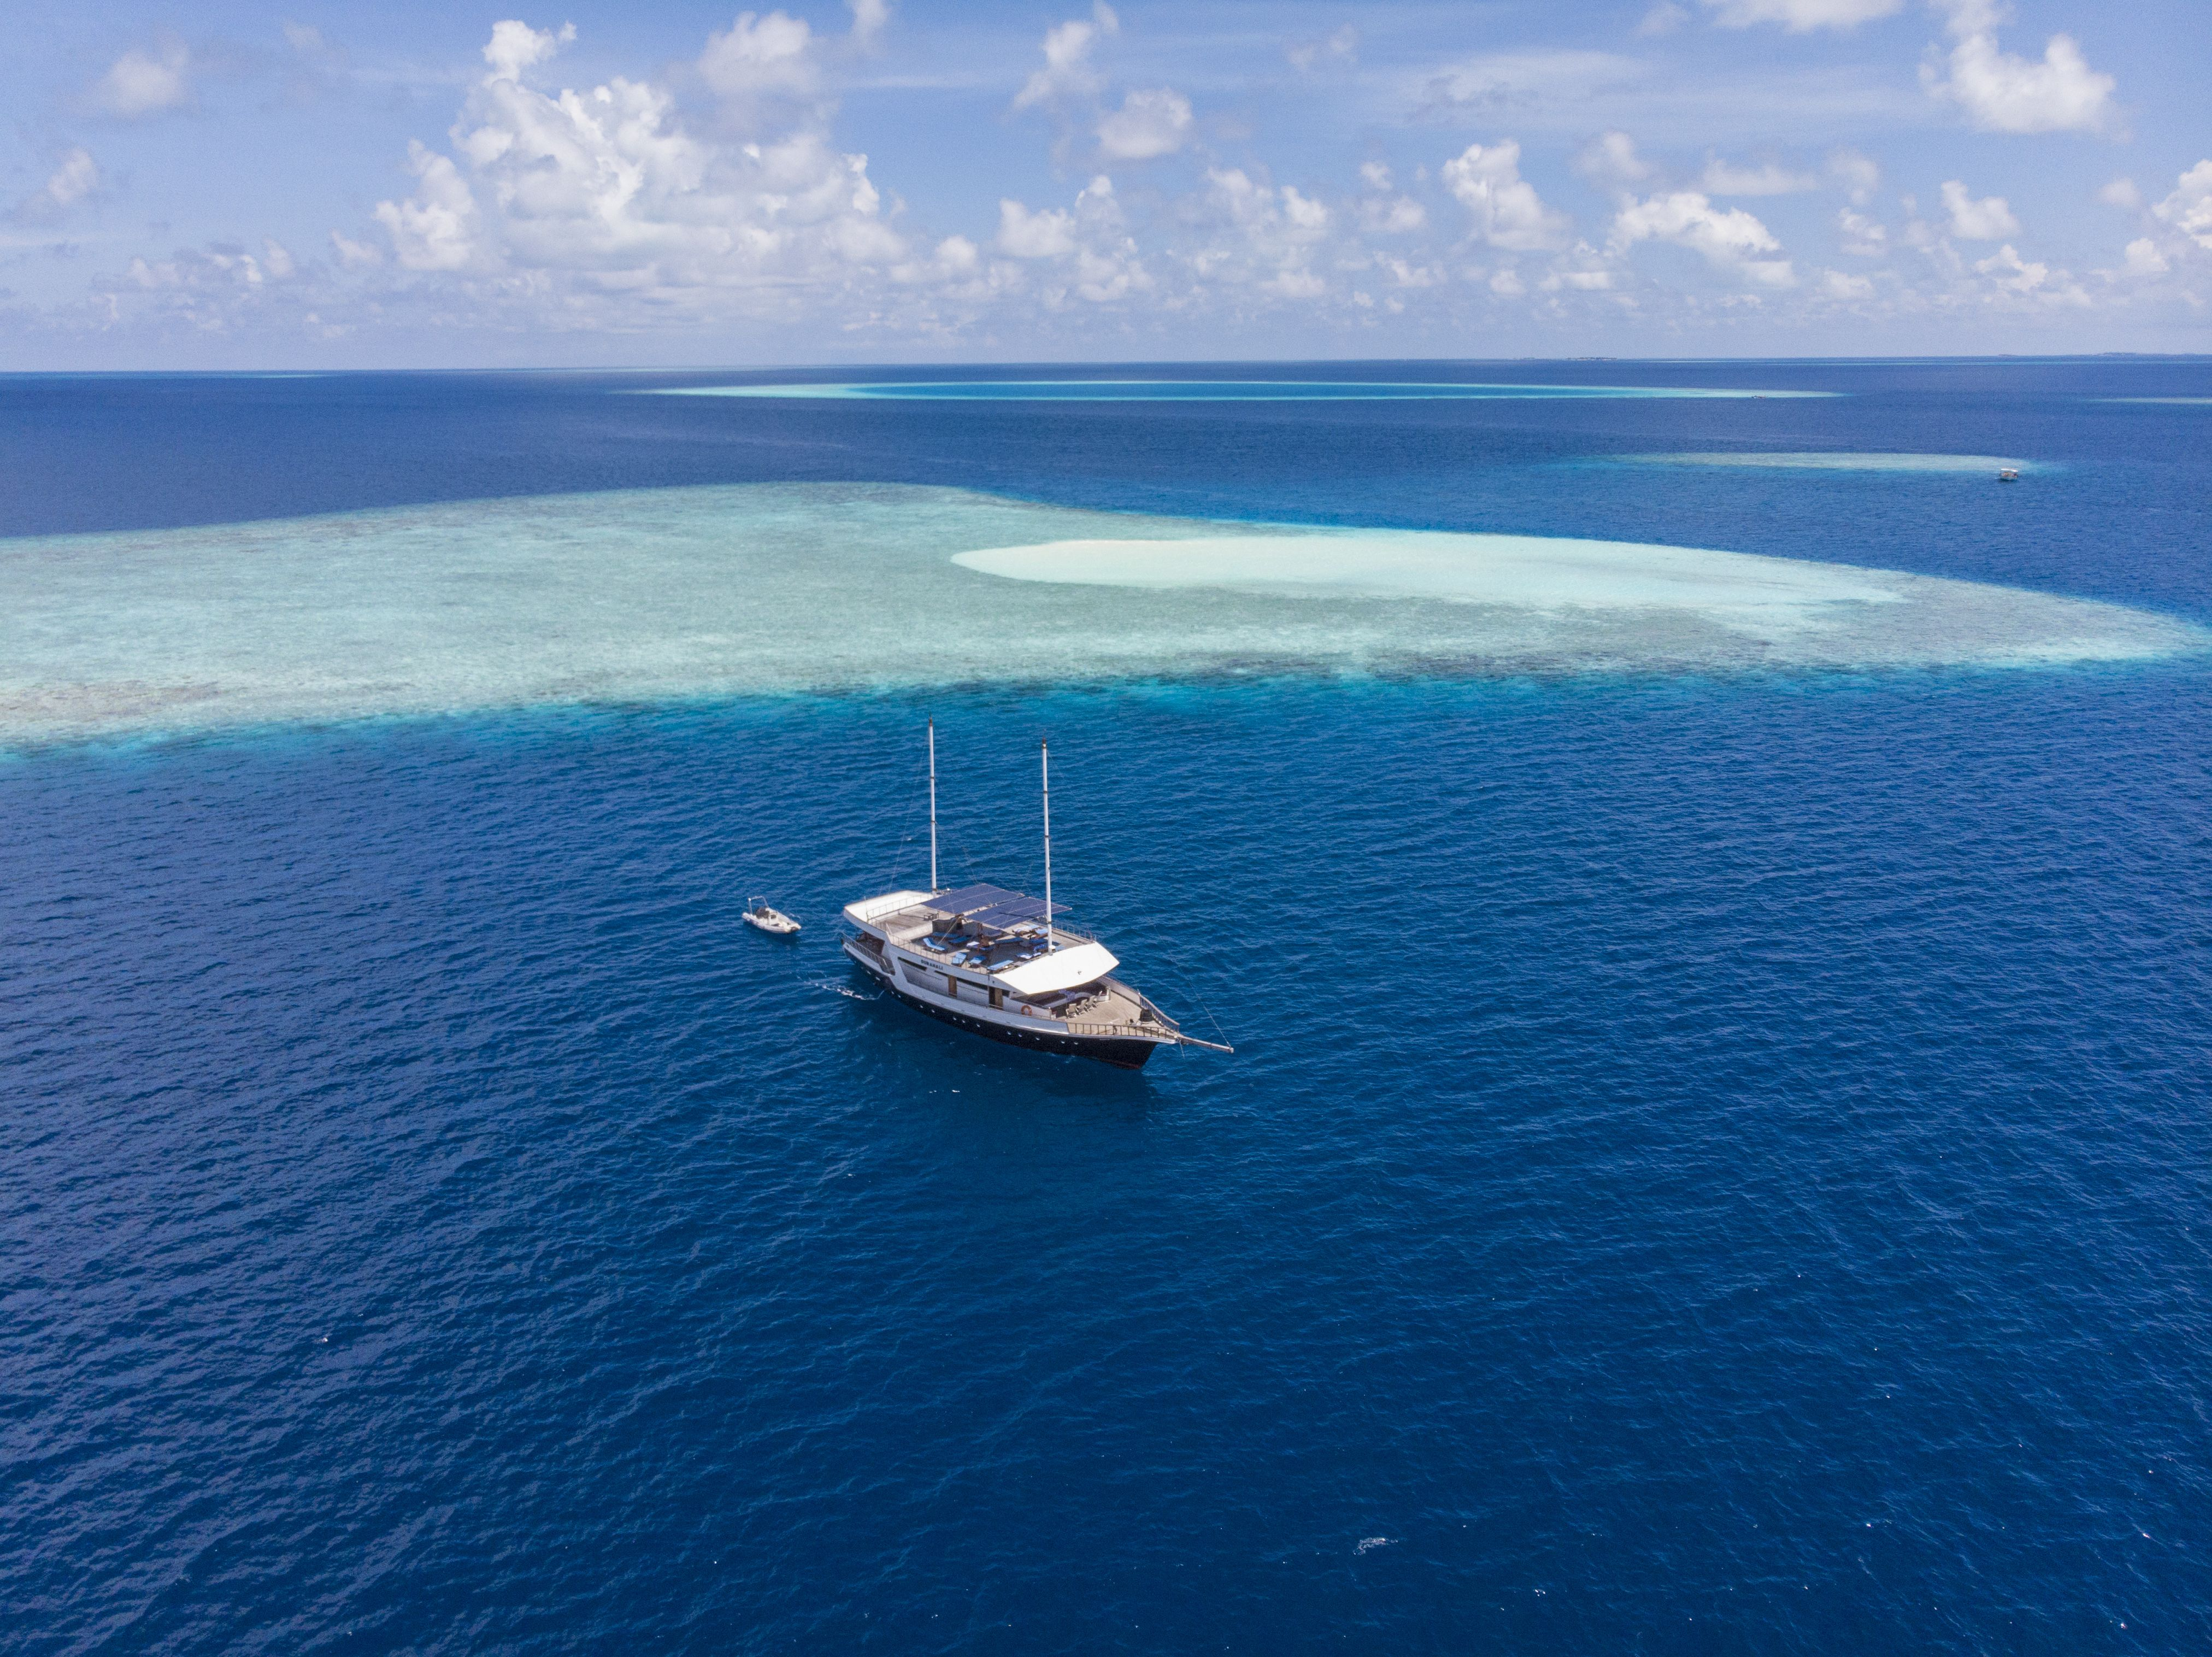 Departing the sandbank and on the way for deserted Island